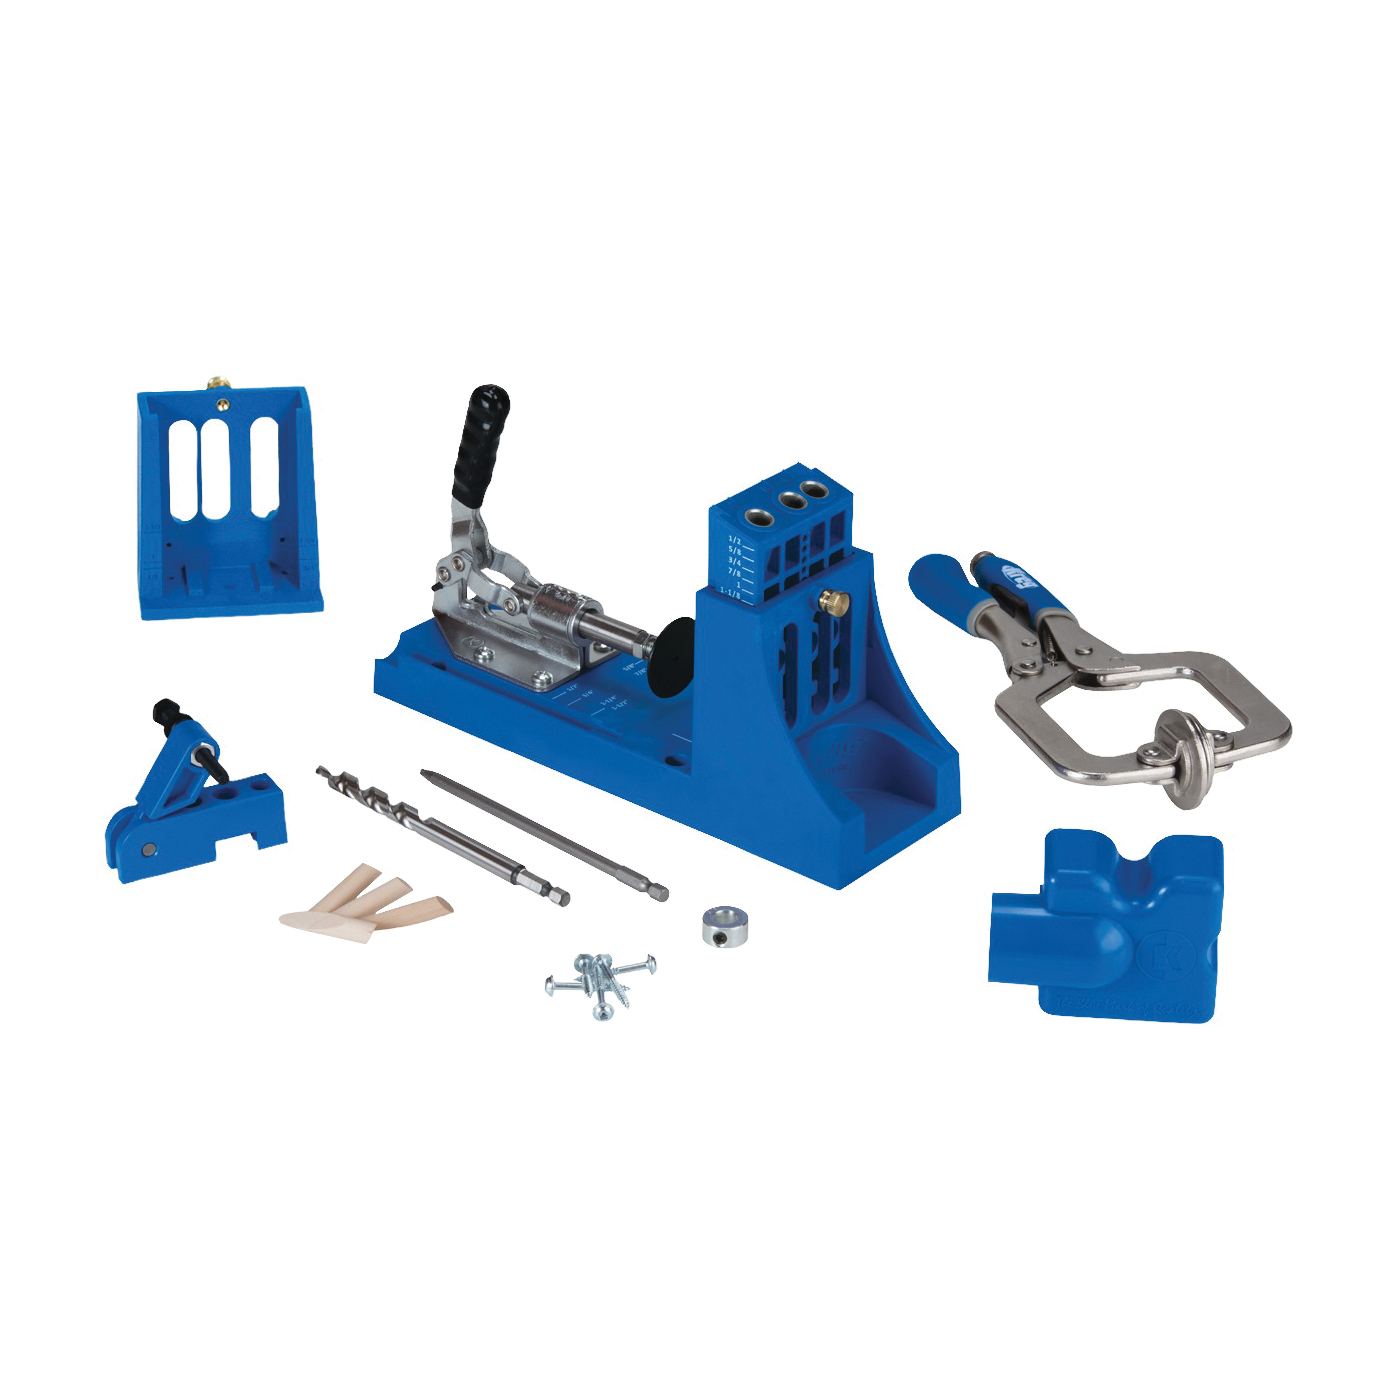 Picture of Kreg K4MS Pocket-Hole Jig, 3 -Guide Hole, Glass Filled Nylon, For: 1/2 to 1-1/2 in Thick Materials